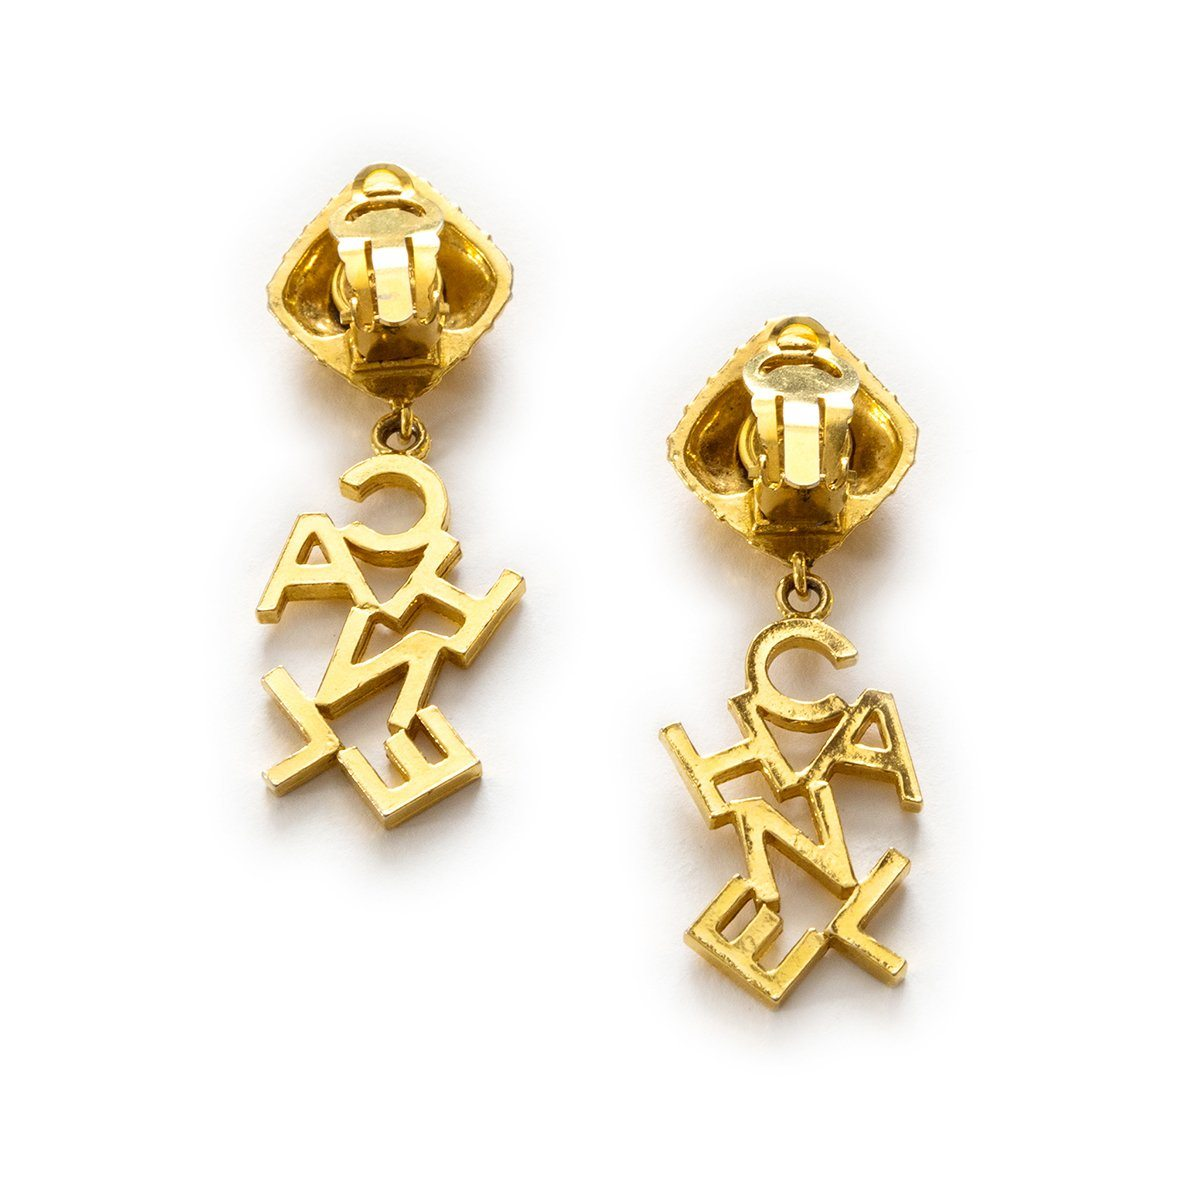 Chanel Logo Clip Earrings 4, Gold Plated